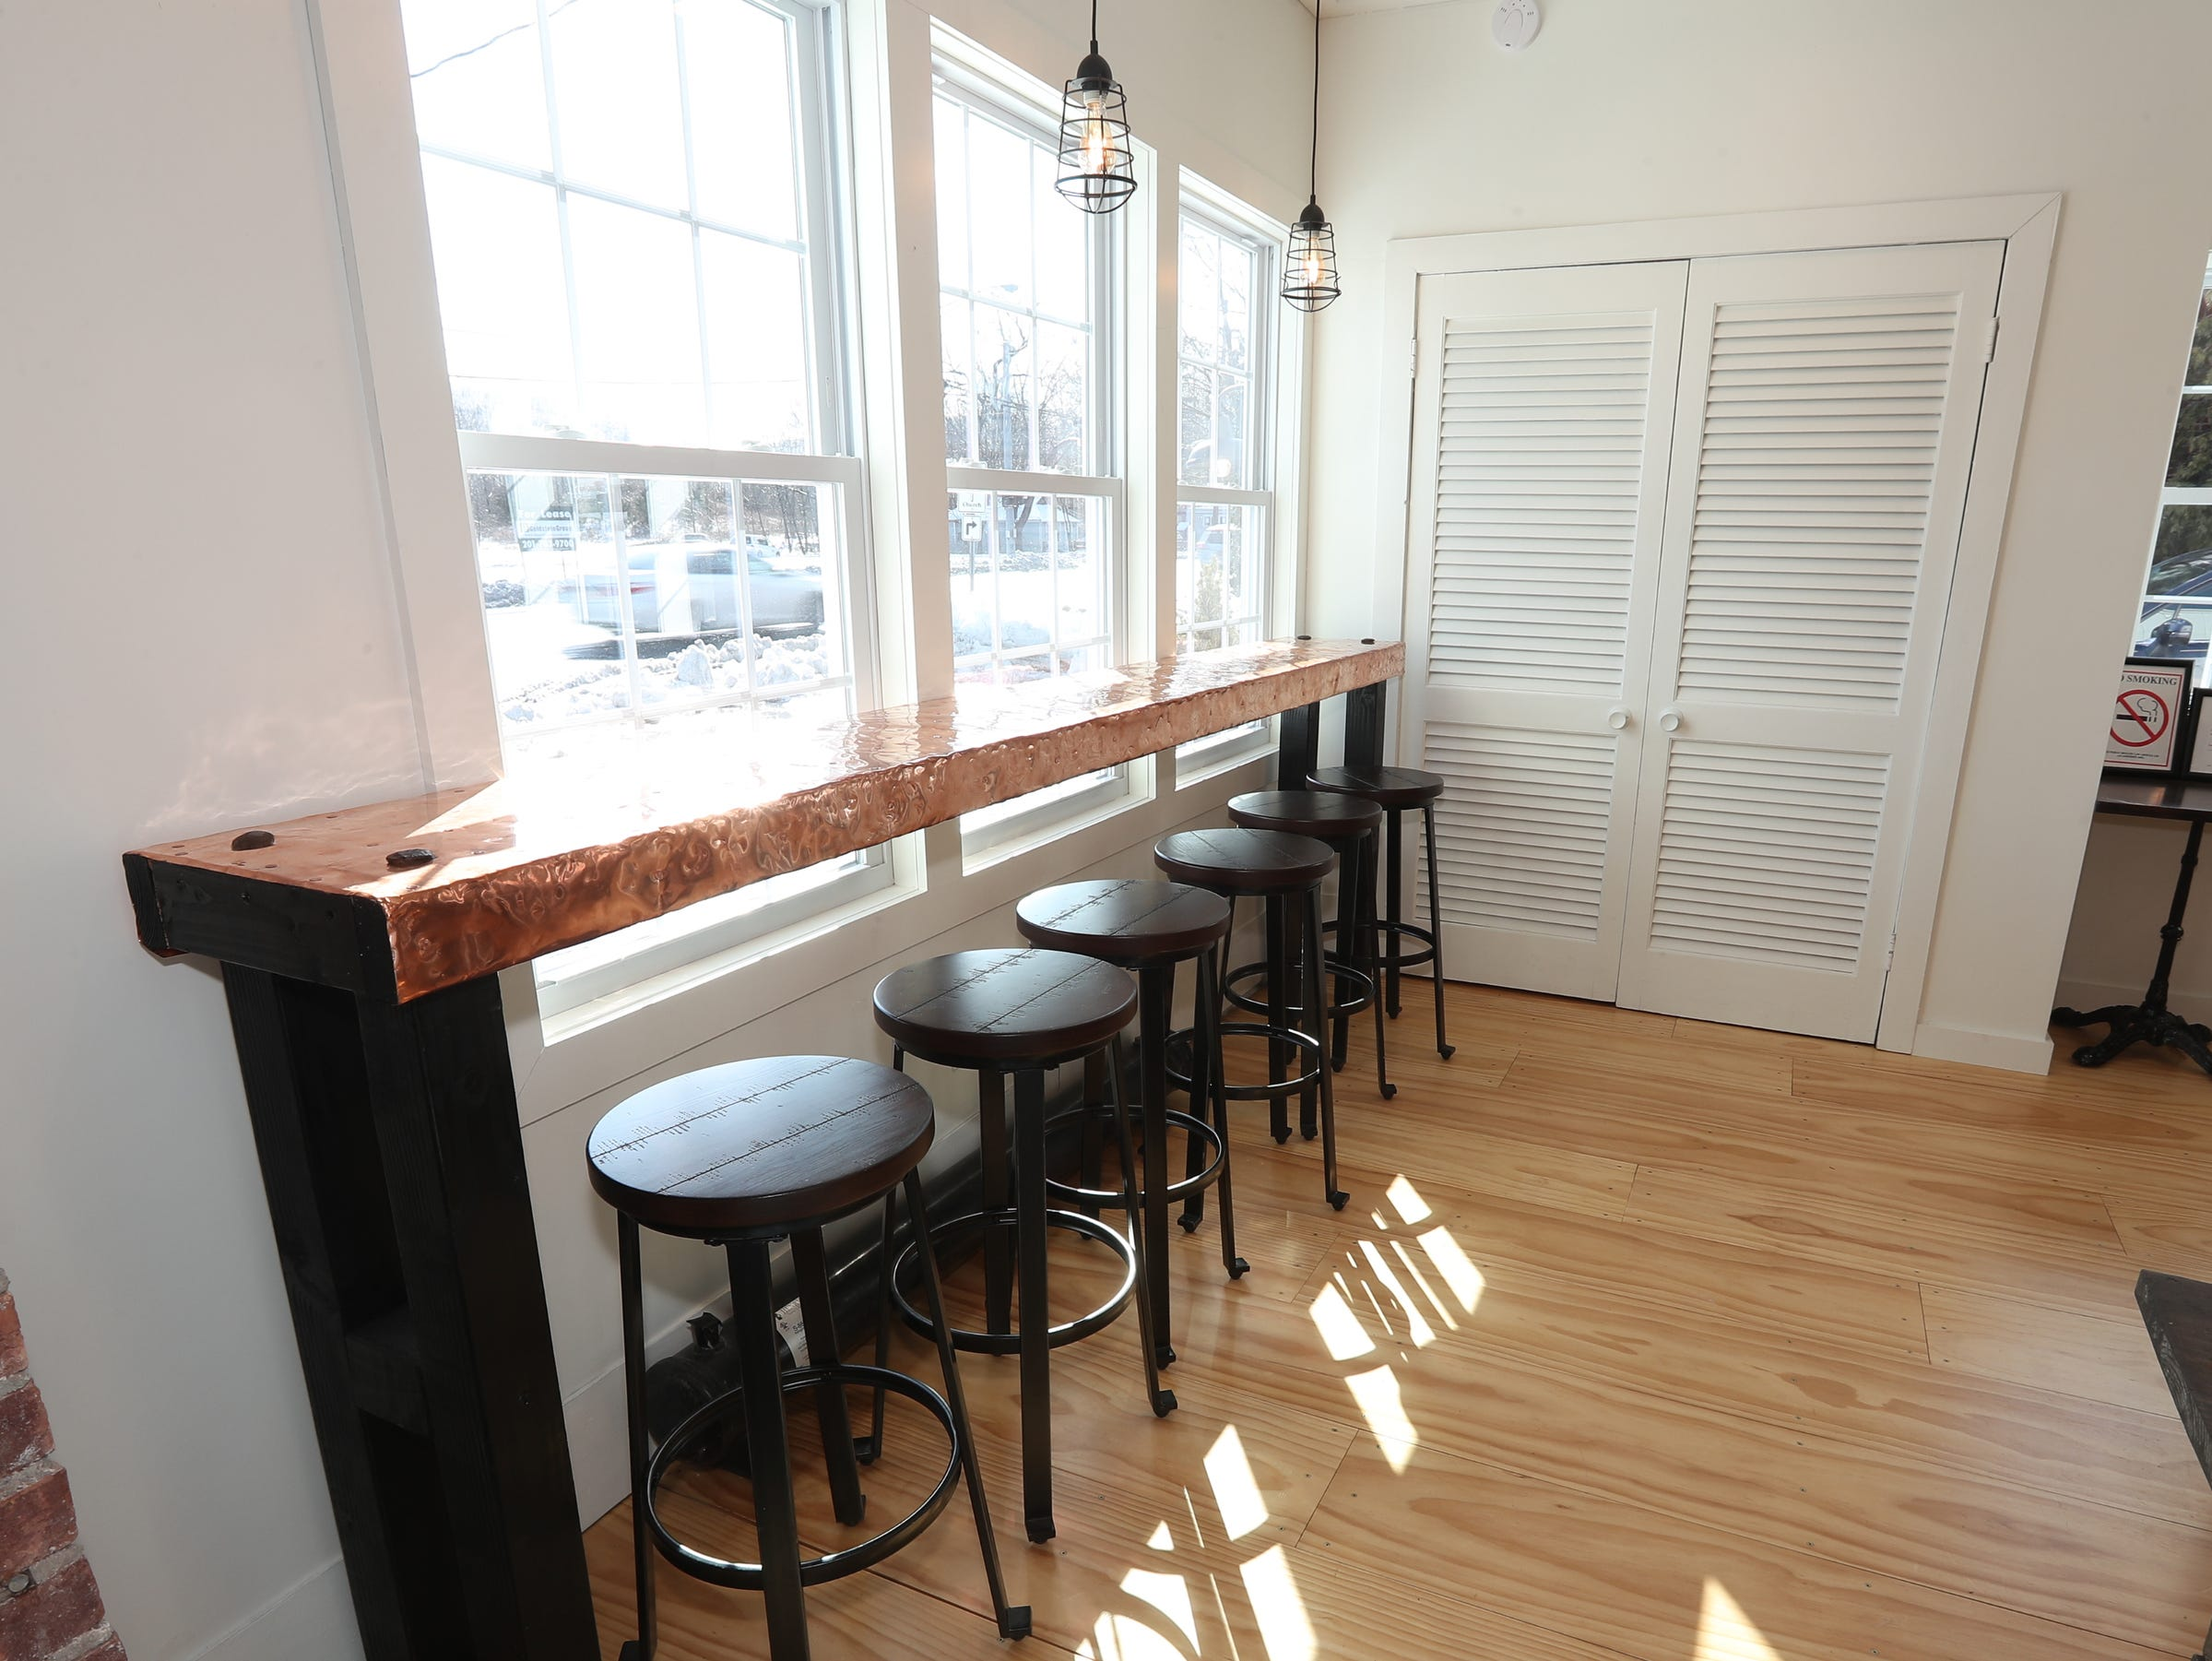 The eating area at Happy Belly Kitchen in Sloatsburg on Wednesday, February 13, 2019.